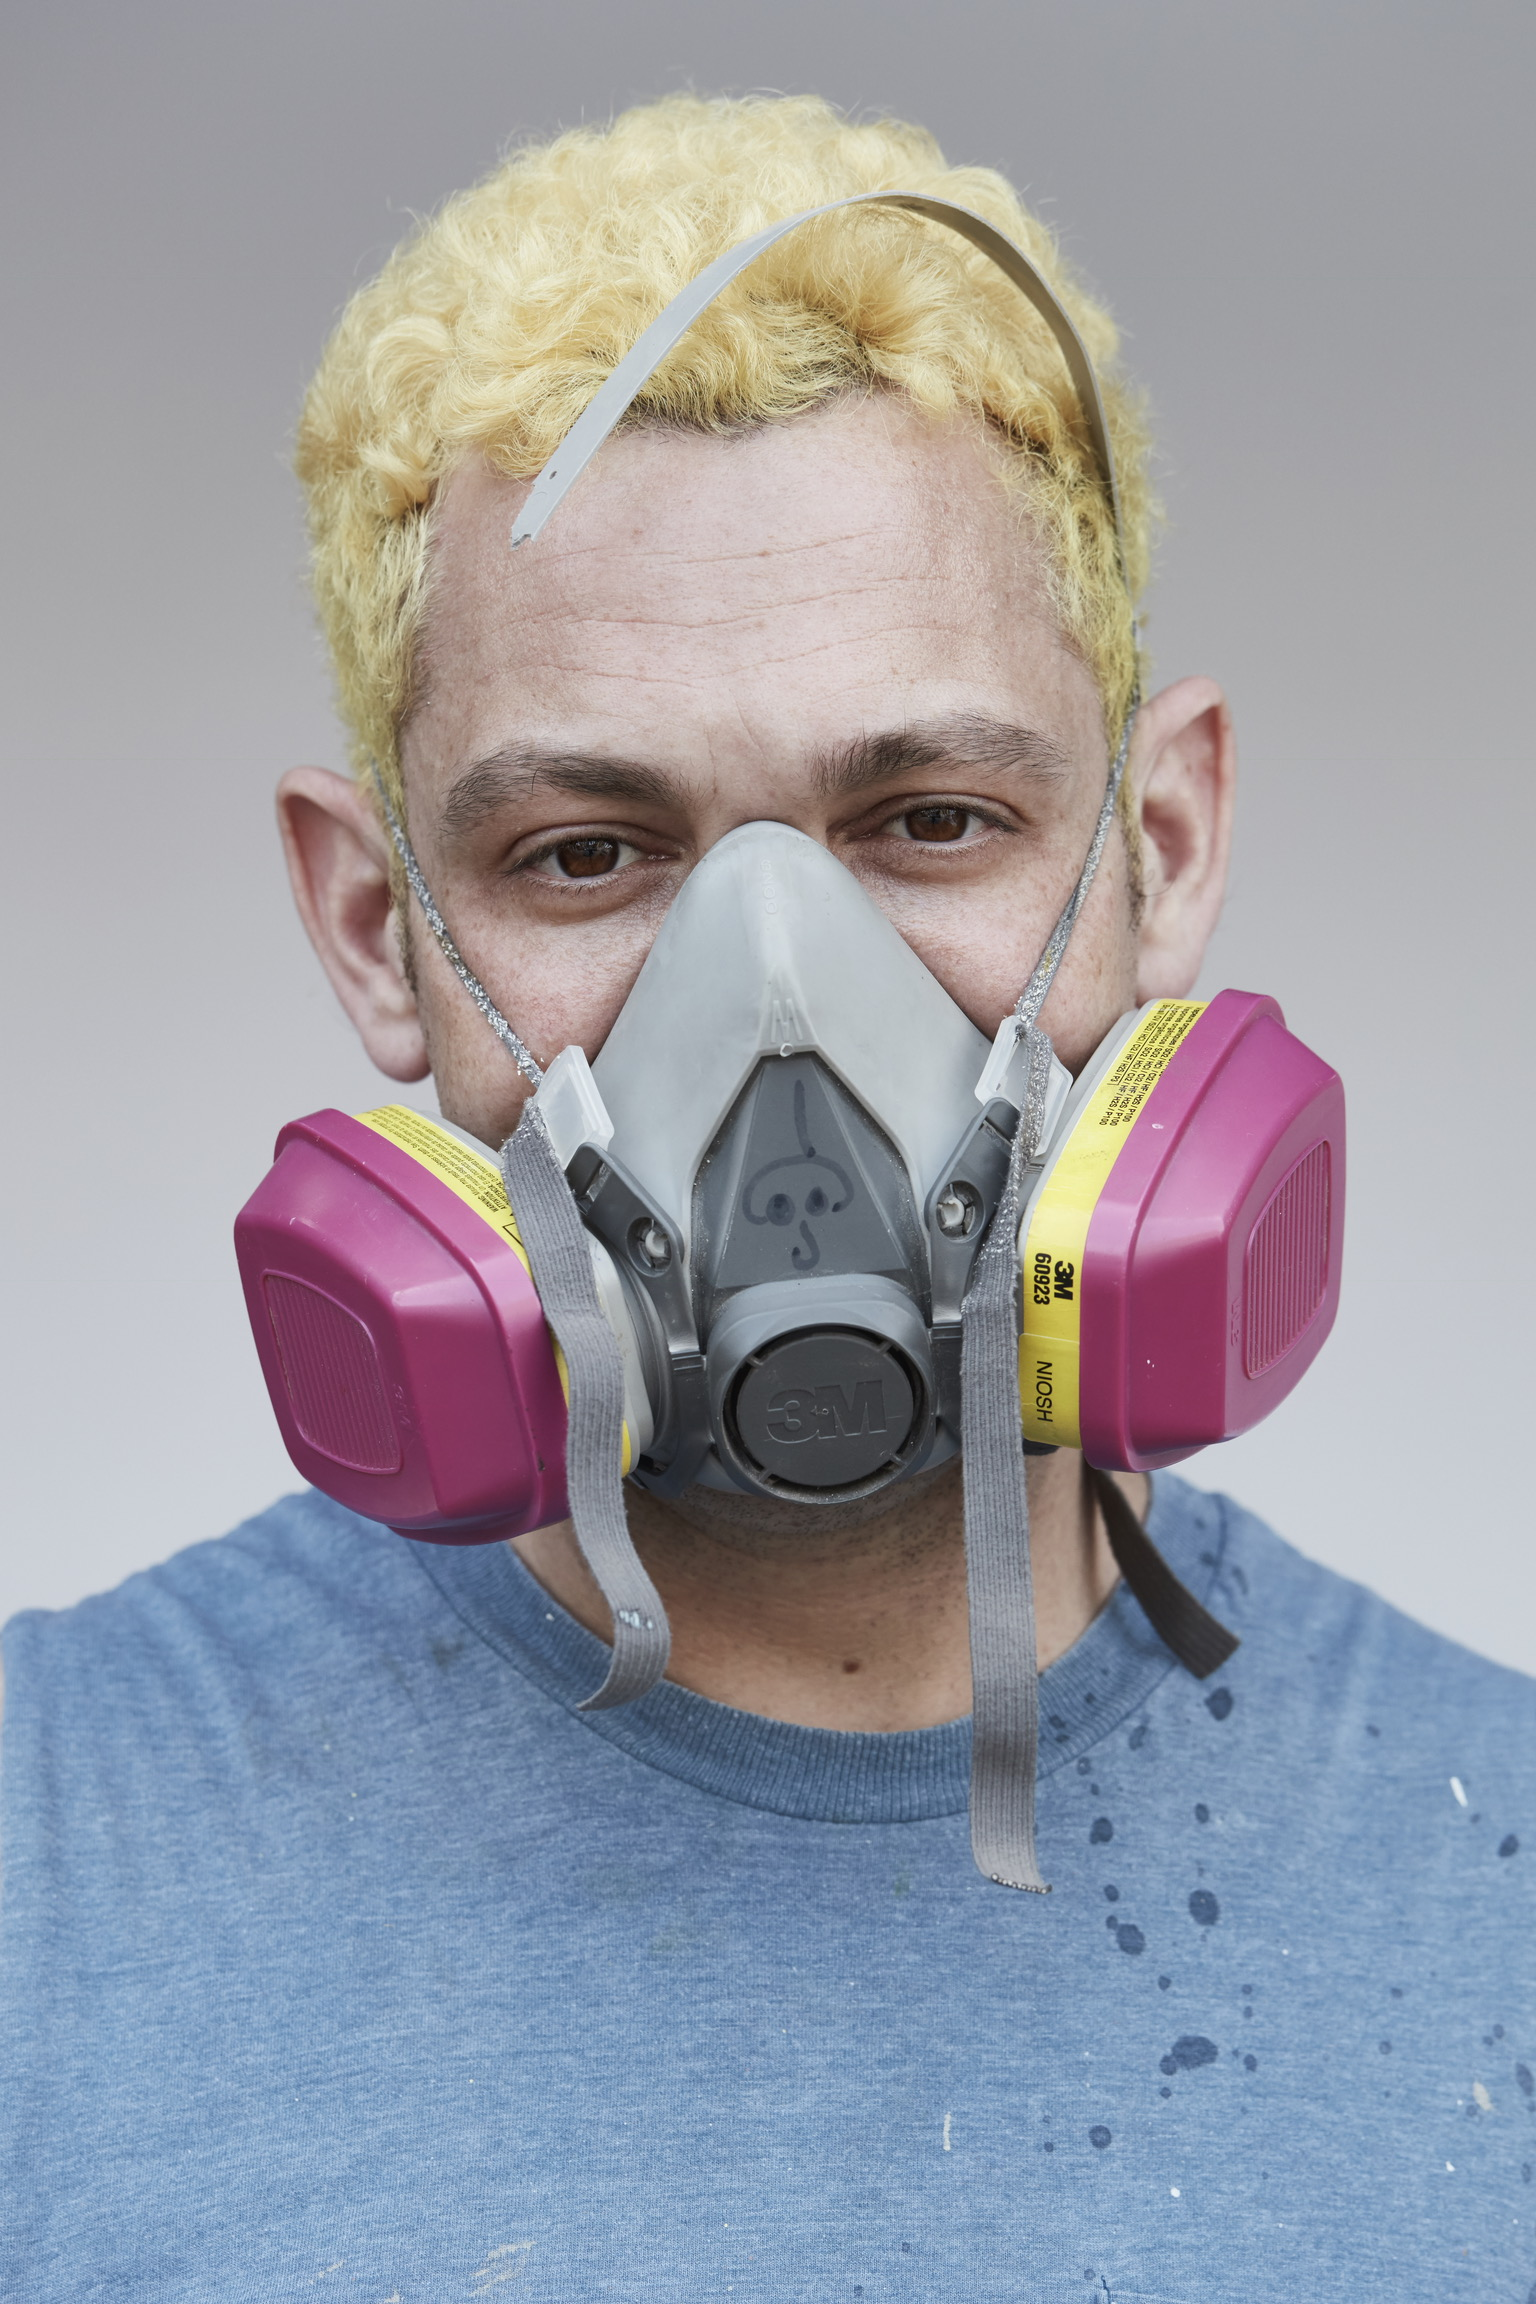 Youngsters take note: Alex Da Corte is bold with his art but he always wears safety gear. (photo: Jannick Boerlum)